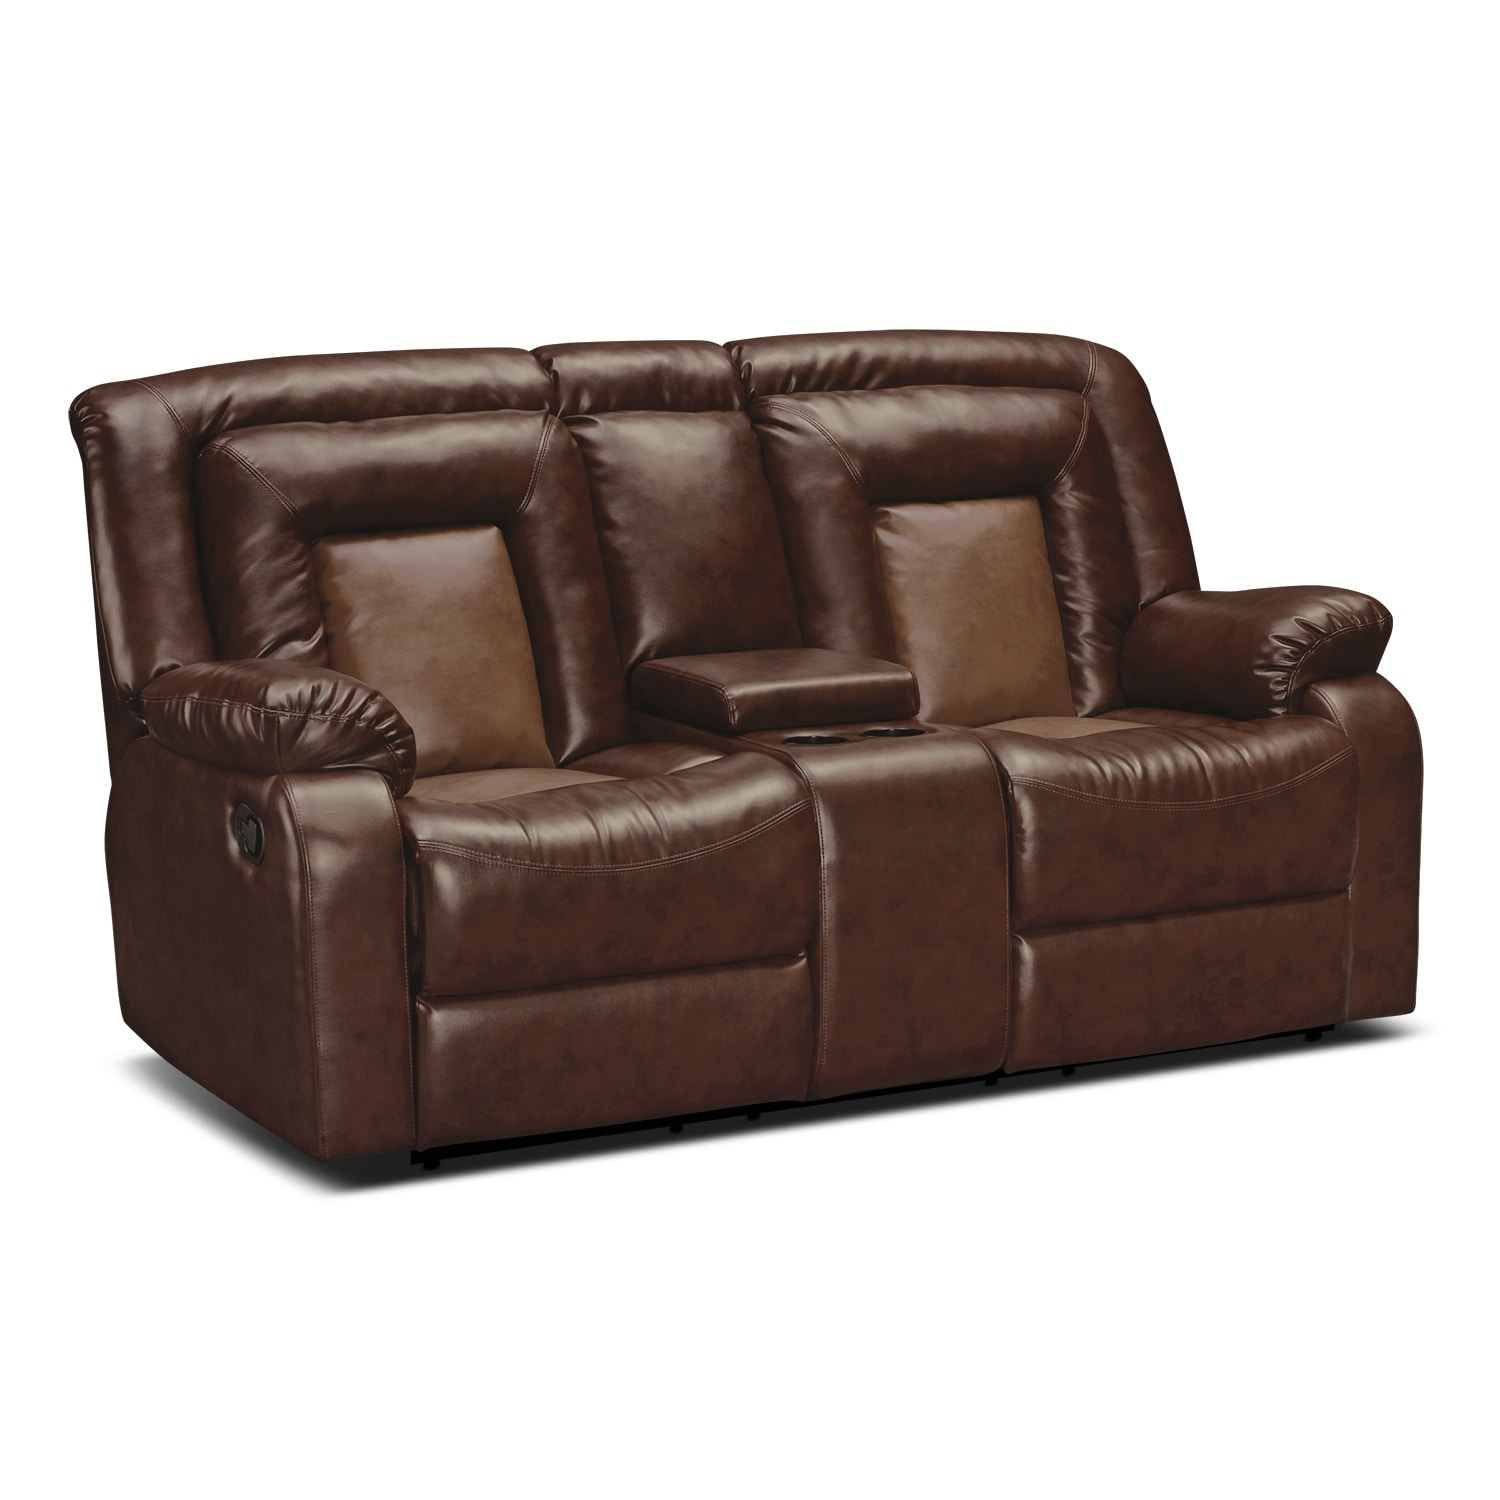 Coming soon Leather sofa and loveseat recliner